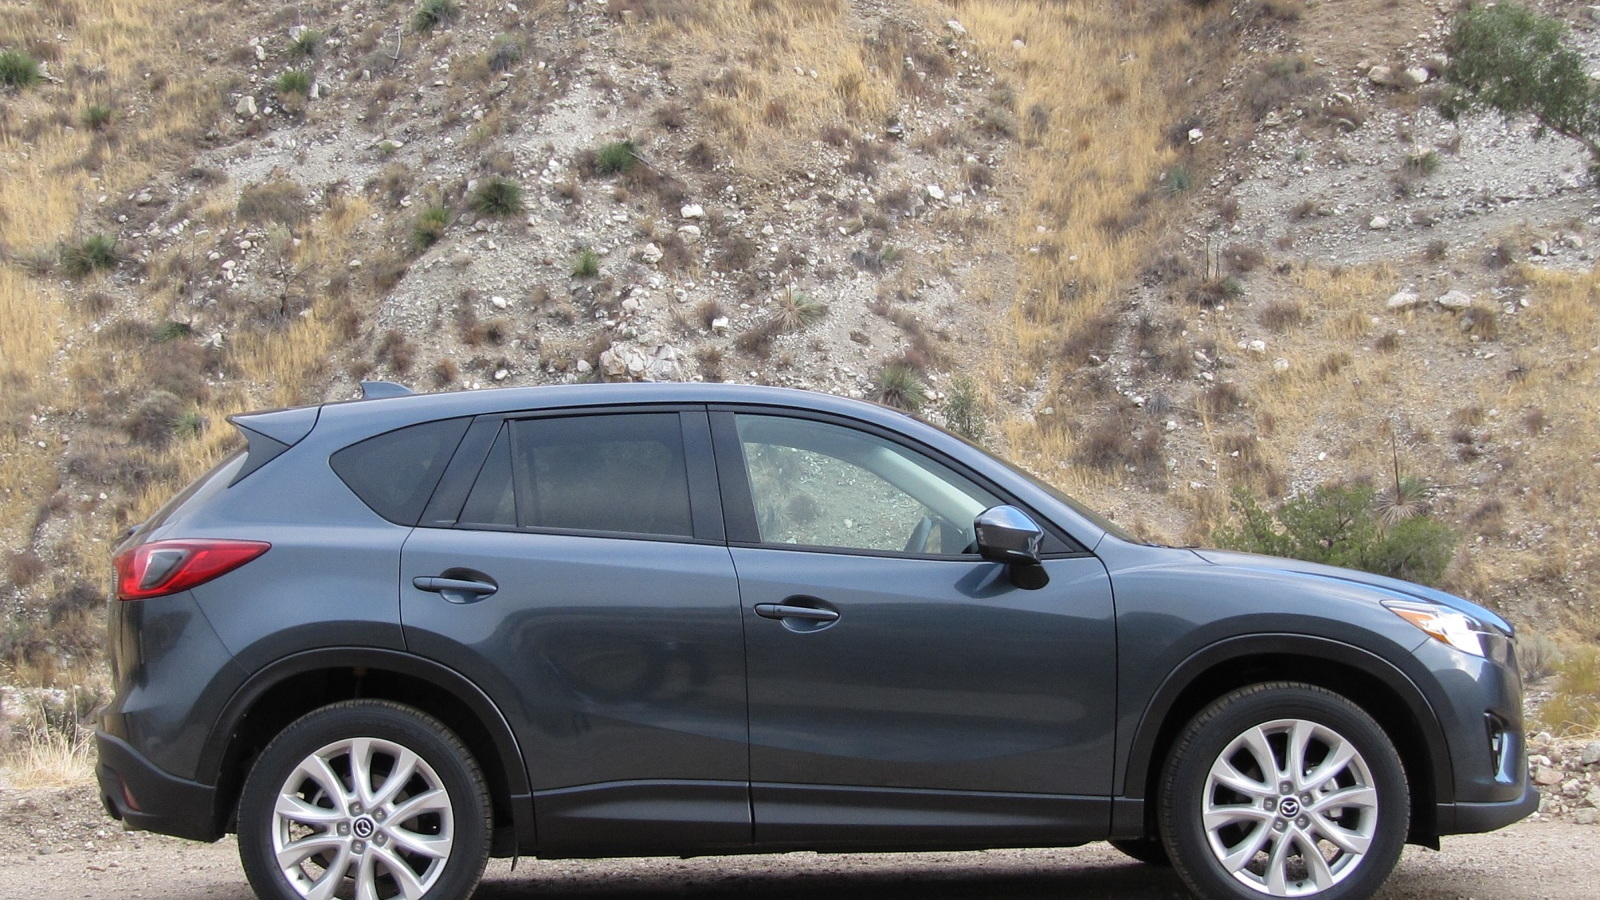 Mazda Cx 5 Gas Mileage >> 2013 Mazda Cx 5 Kicks Compact Crossover Gas Mileage Higher